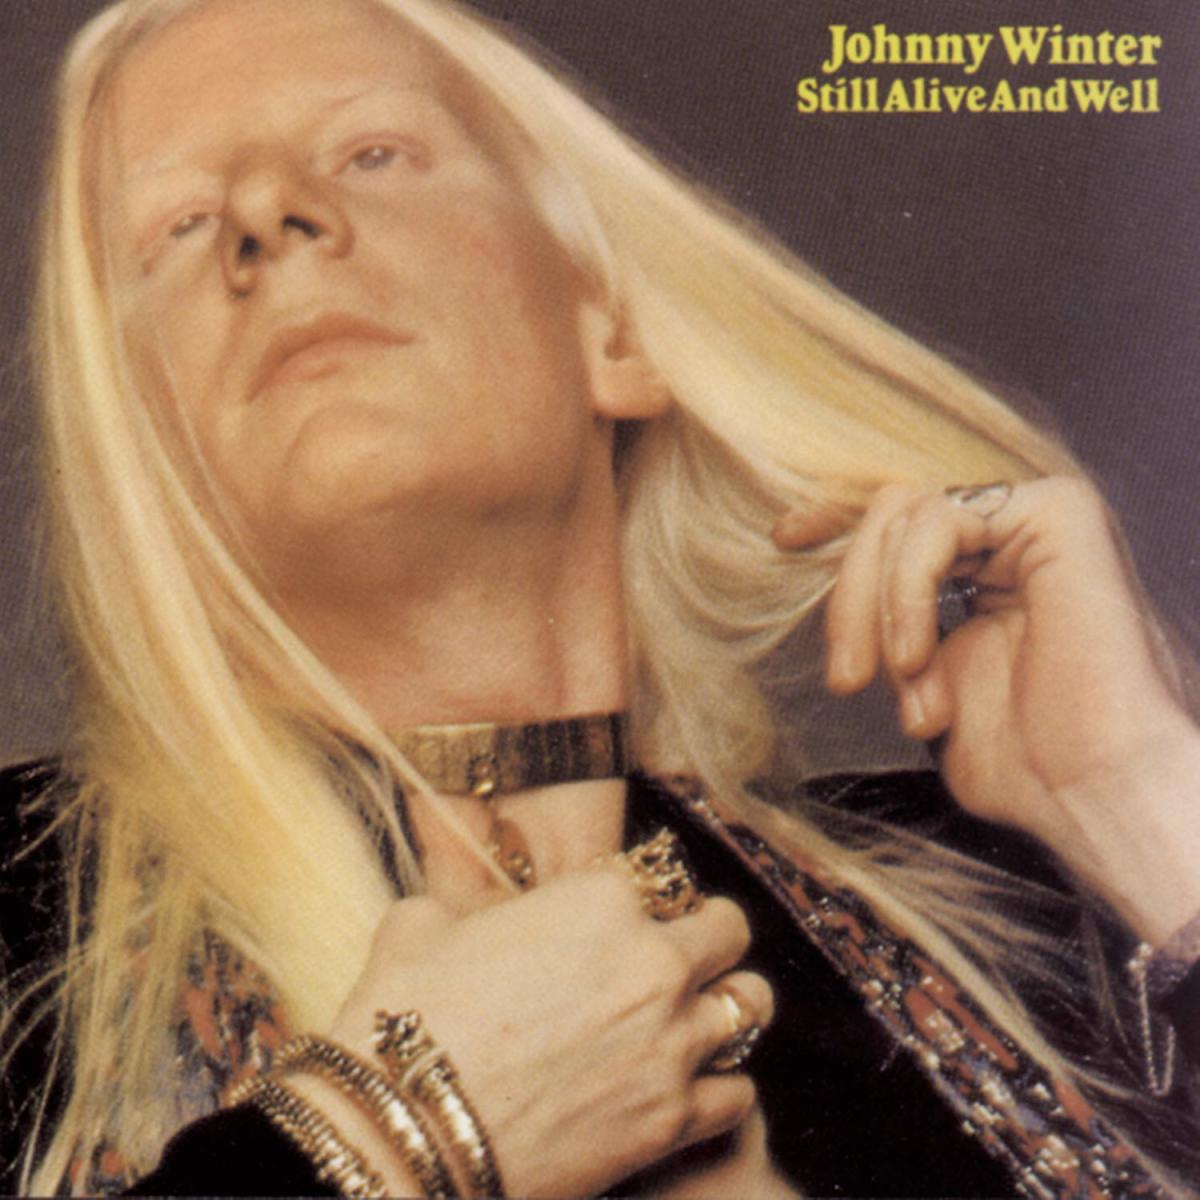 Johnny Winter, Still Alive and Well